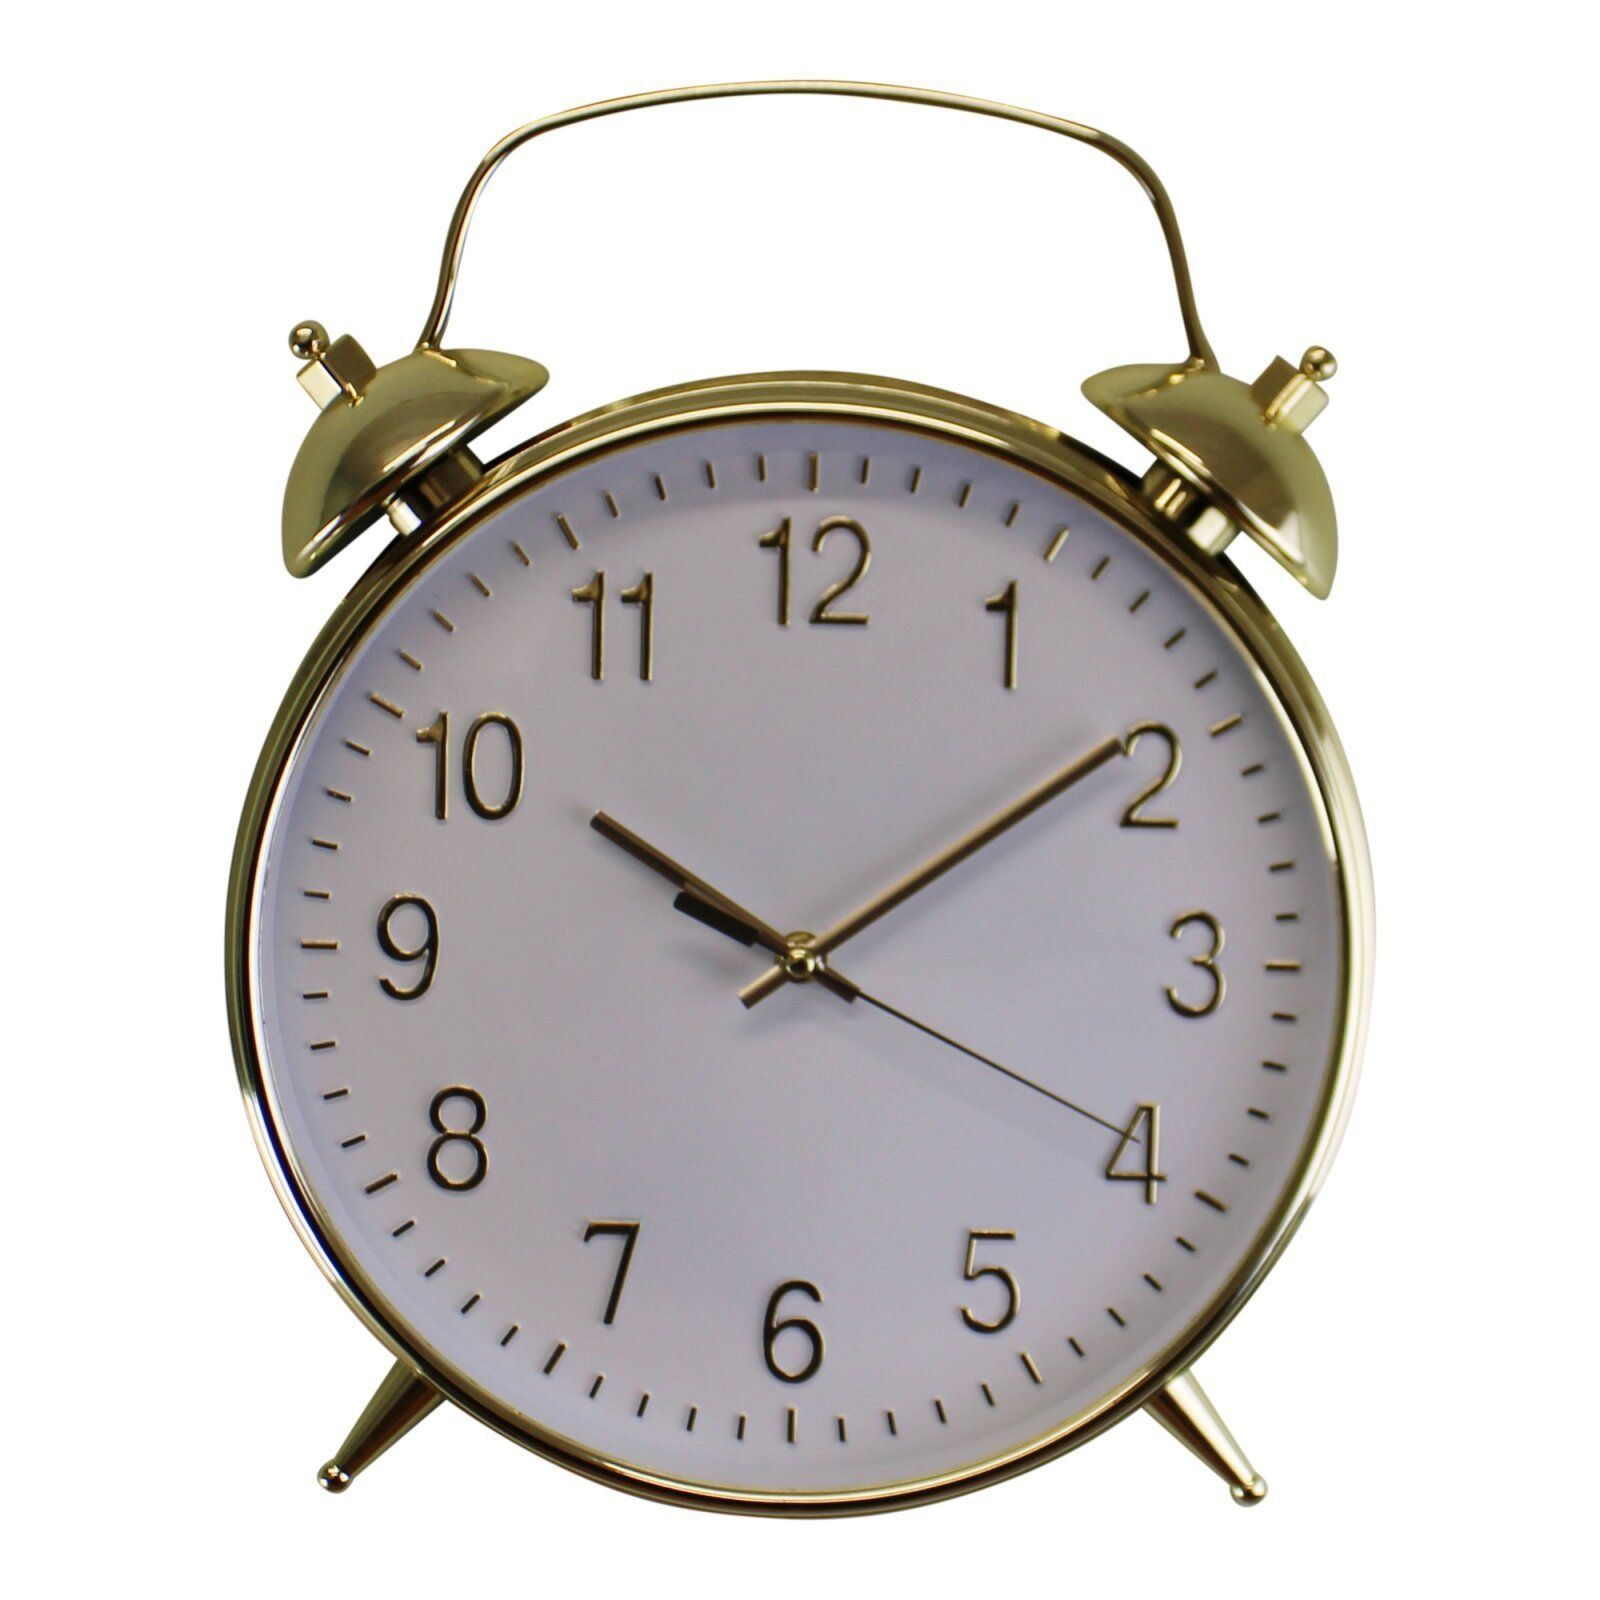 Alarm Style Gold & White Wall Clock